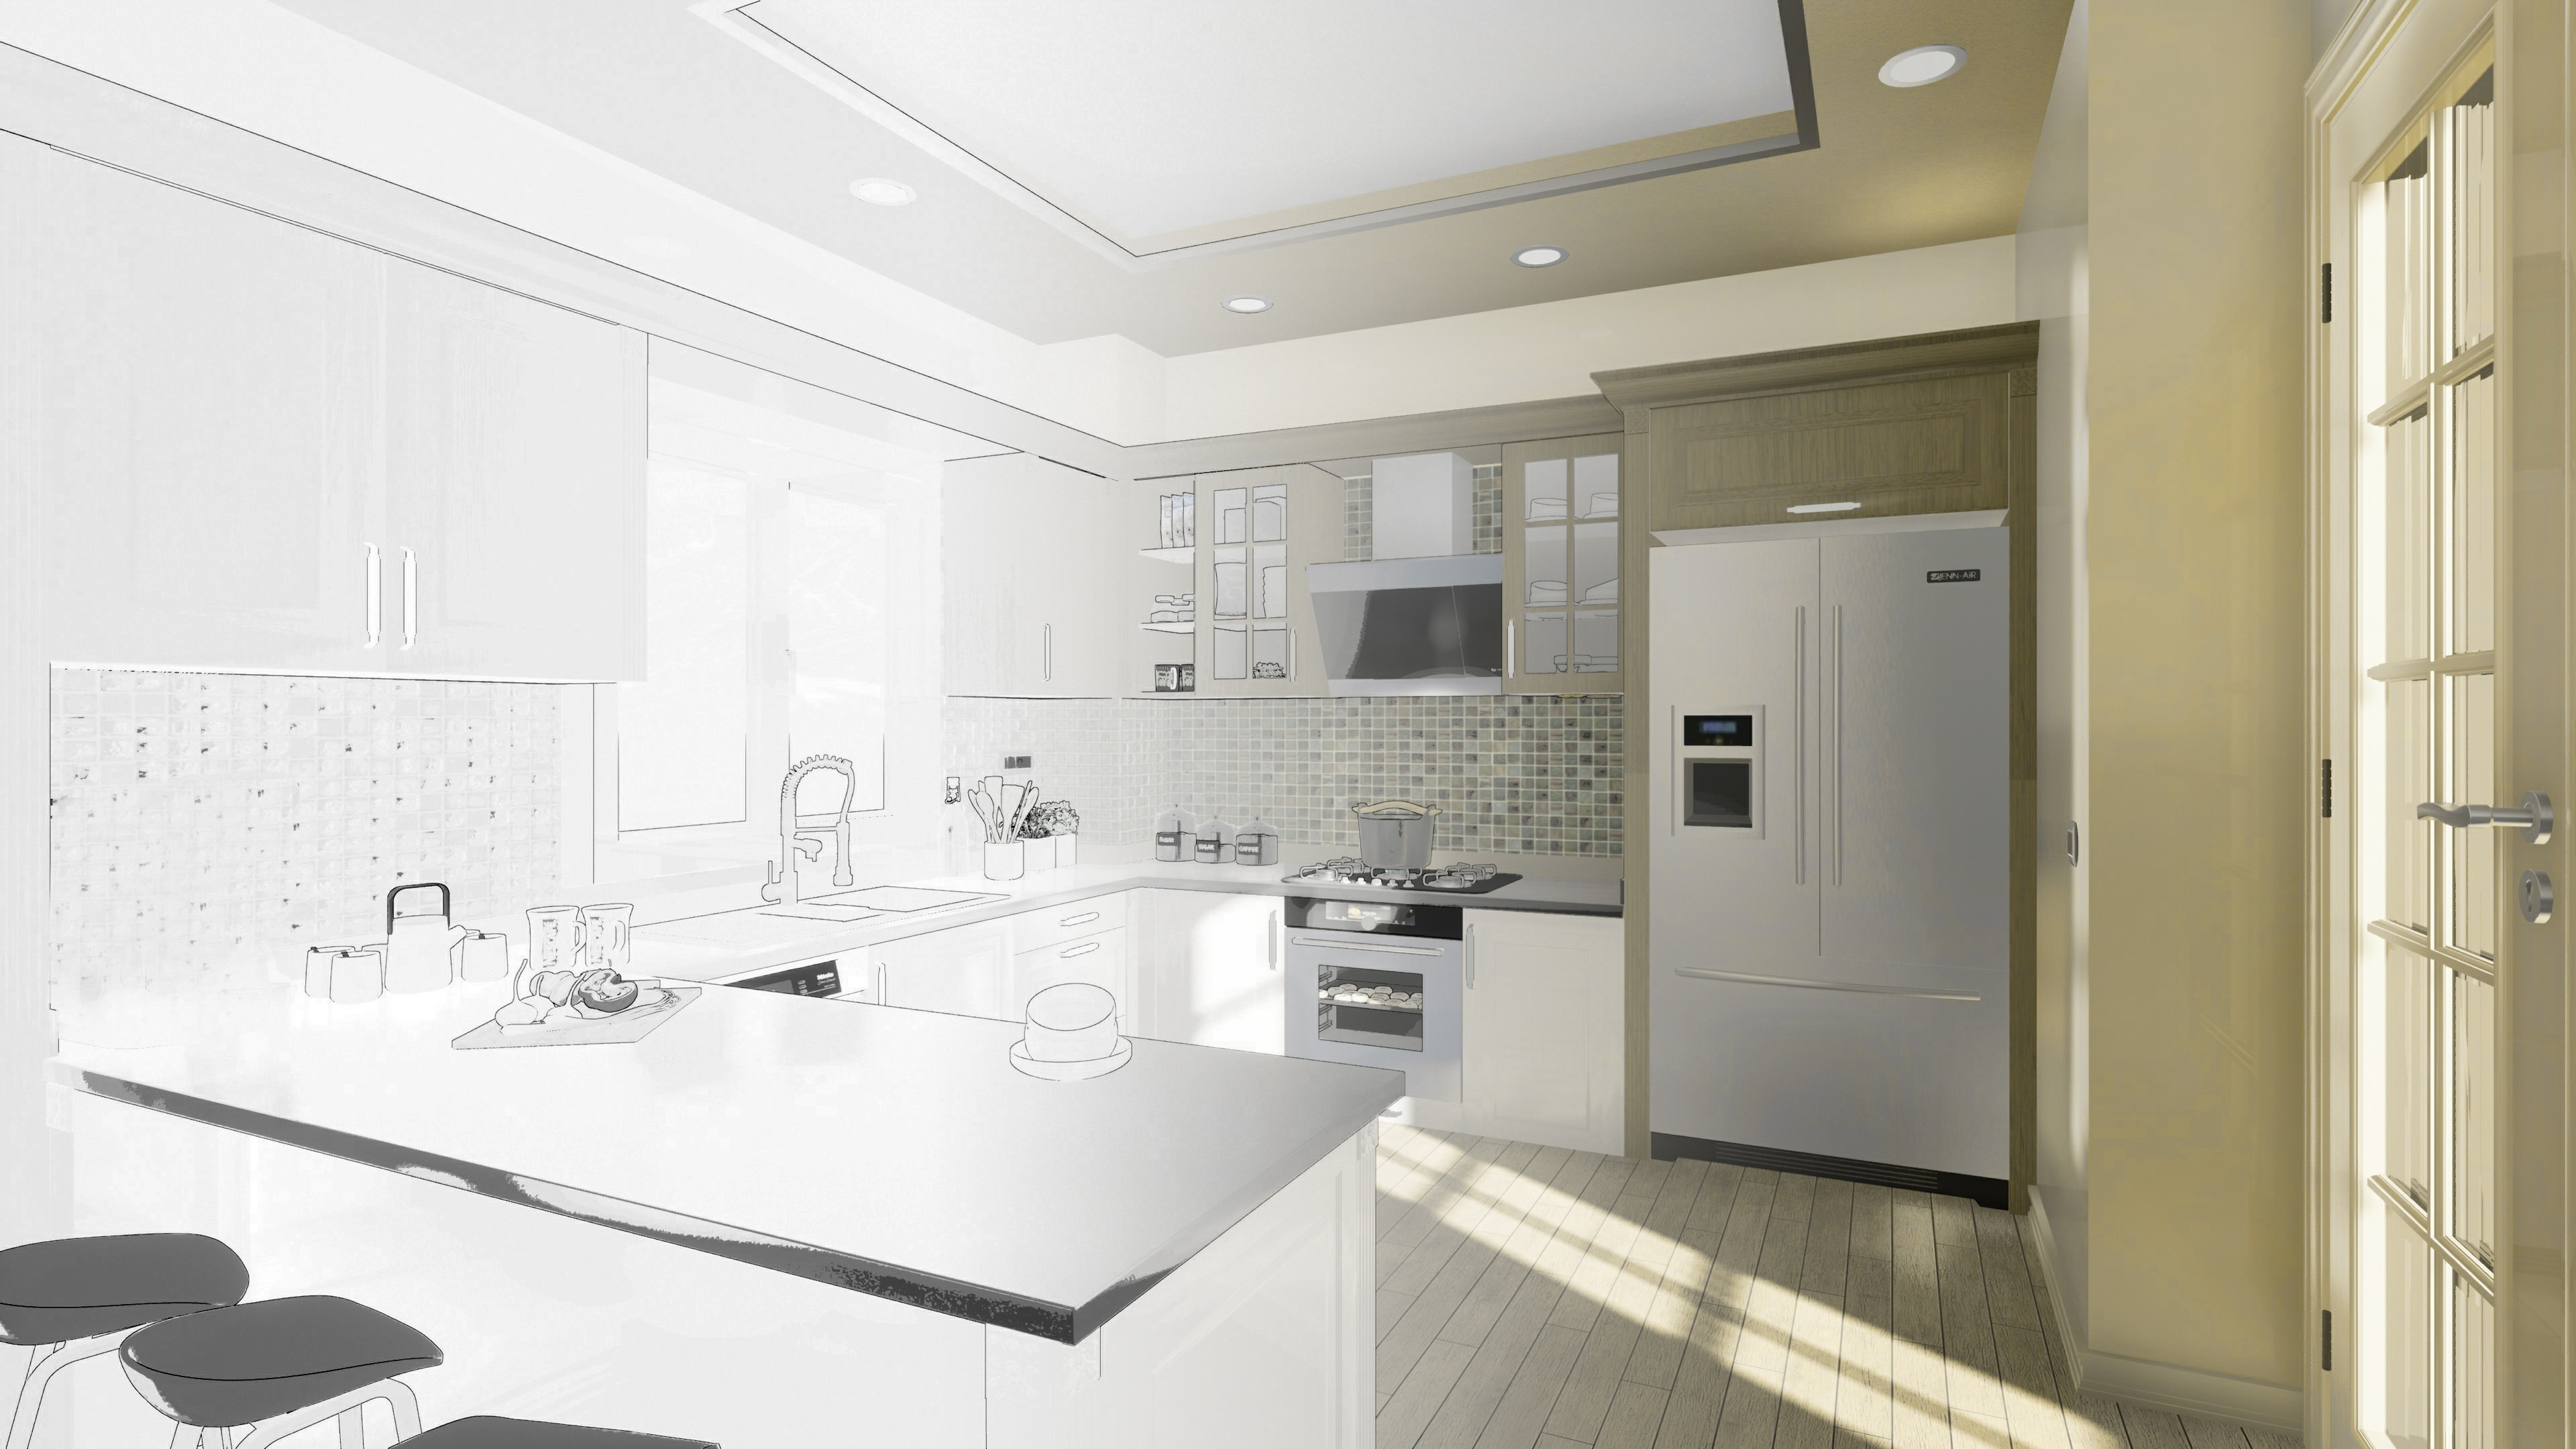 How to design a kitchen-cover.jpg